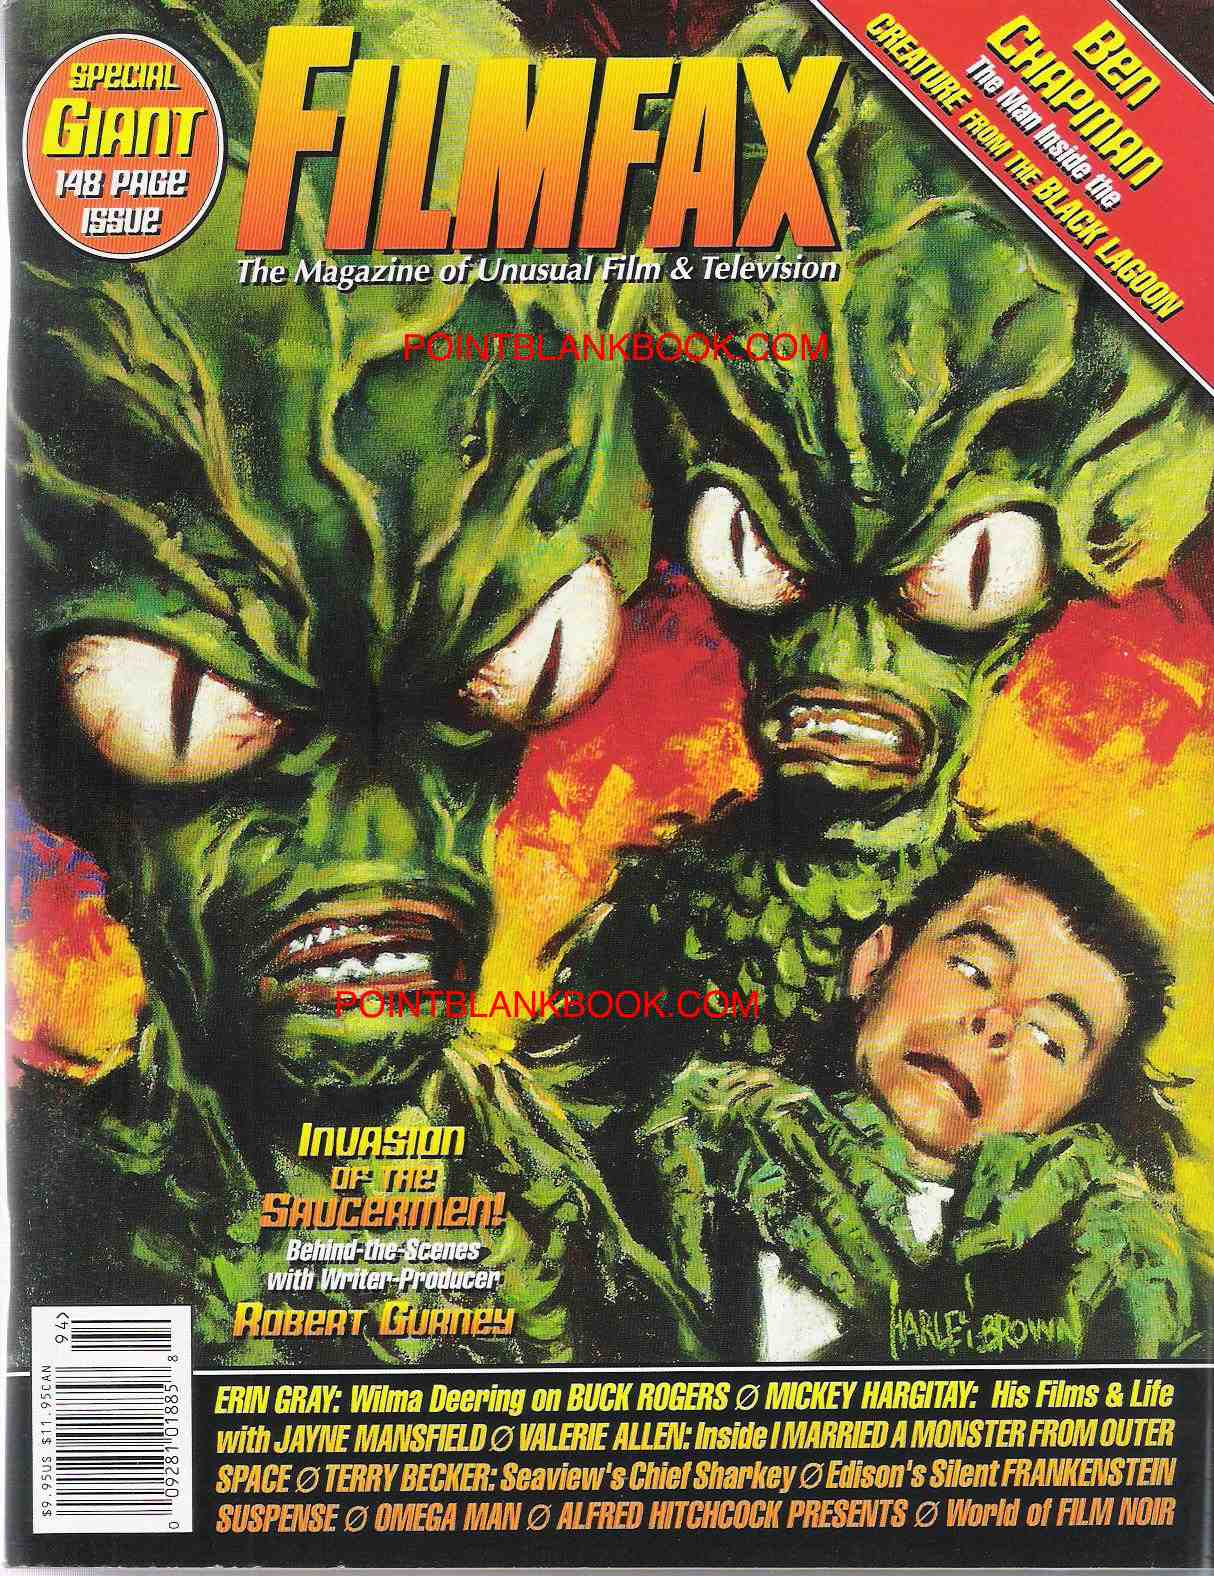 Artist Harley Brown rendered the cover art for the Oct/Nov 2002 issue of Filmfax featuring my interview with filmmaker Robert J. Gurney.